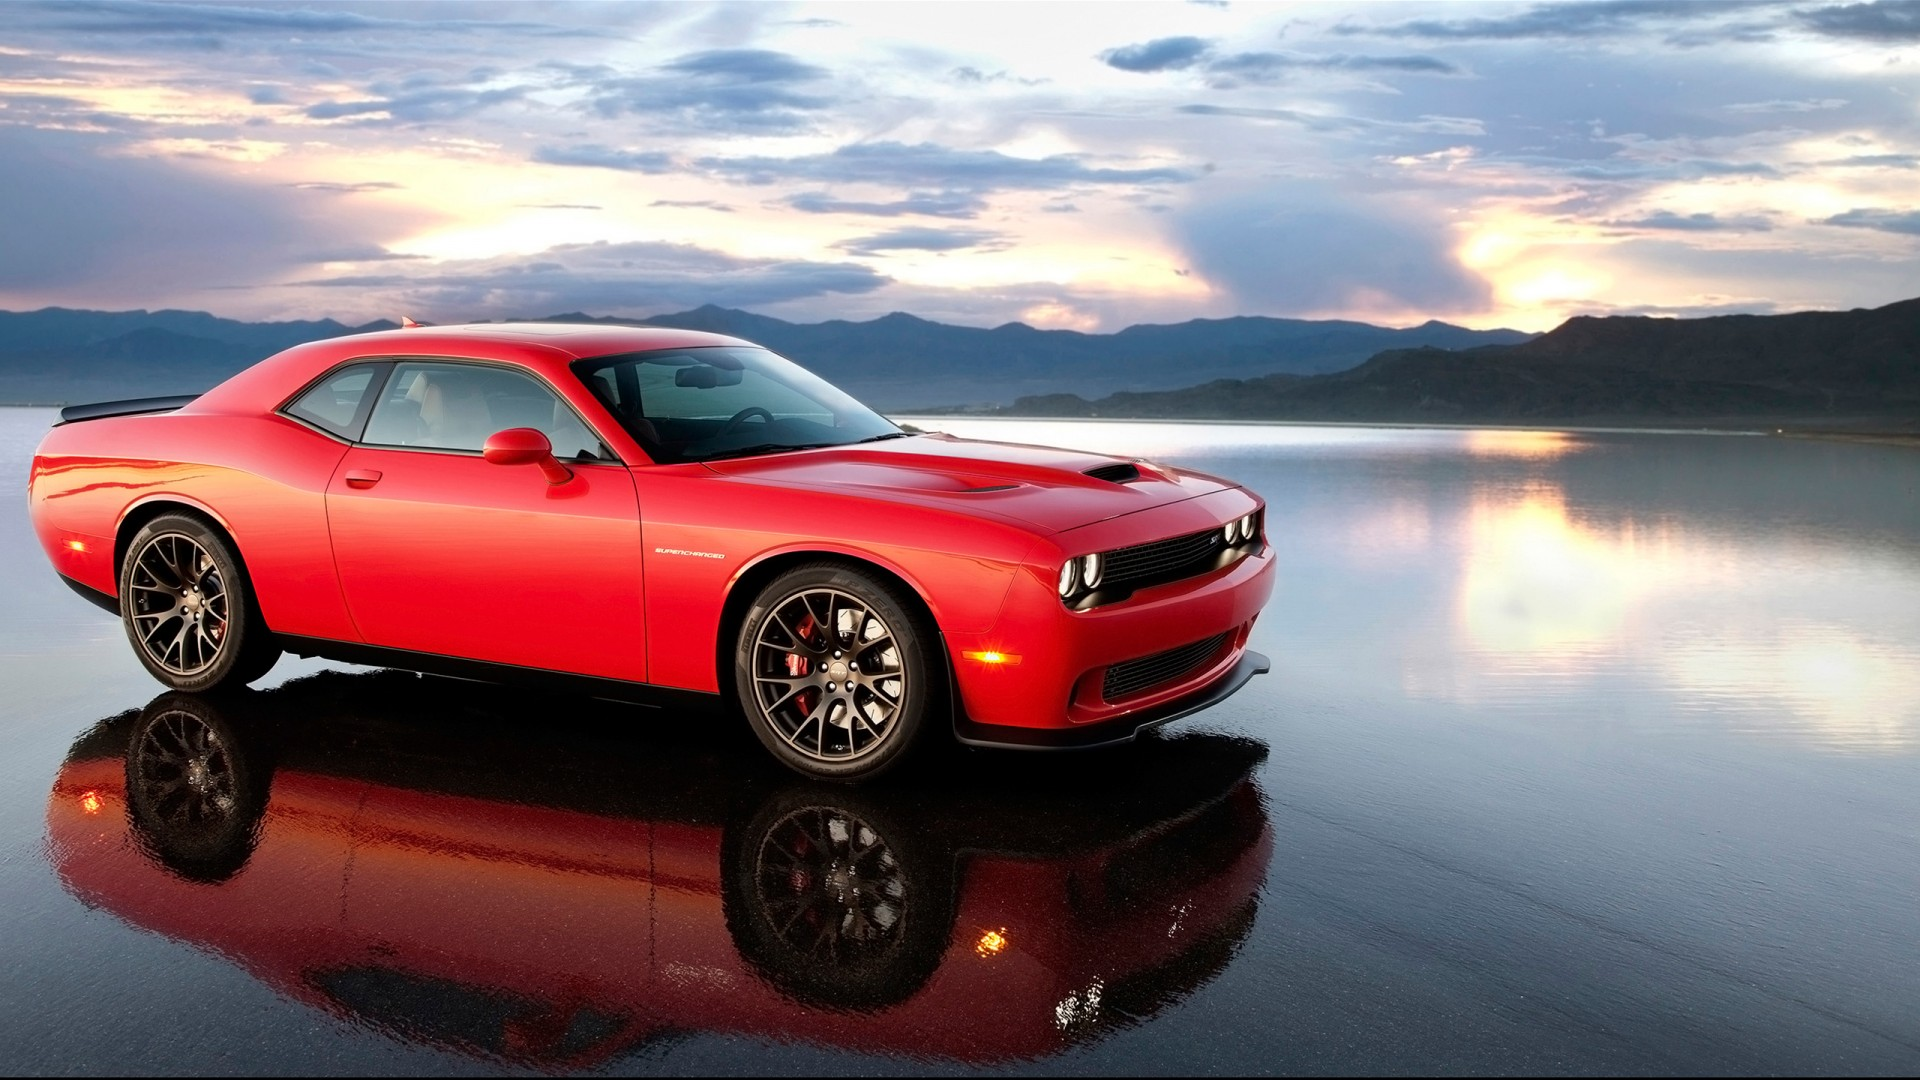 2015 Dodge Challenger SRT Wallpaper | HD Car Wallpapers ...